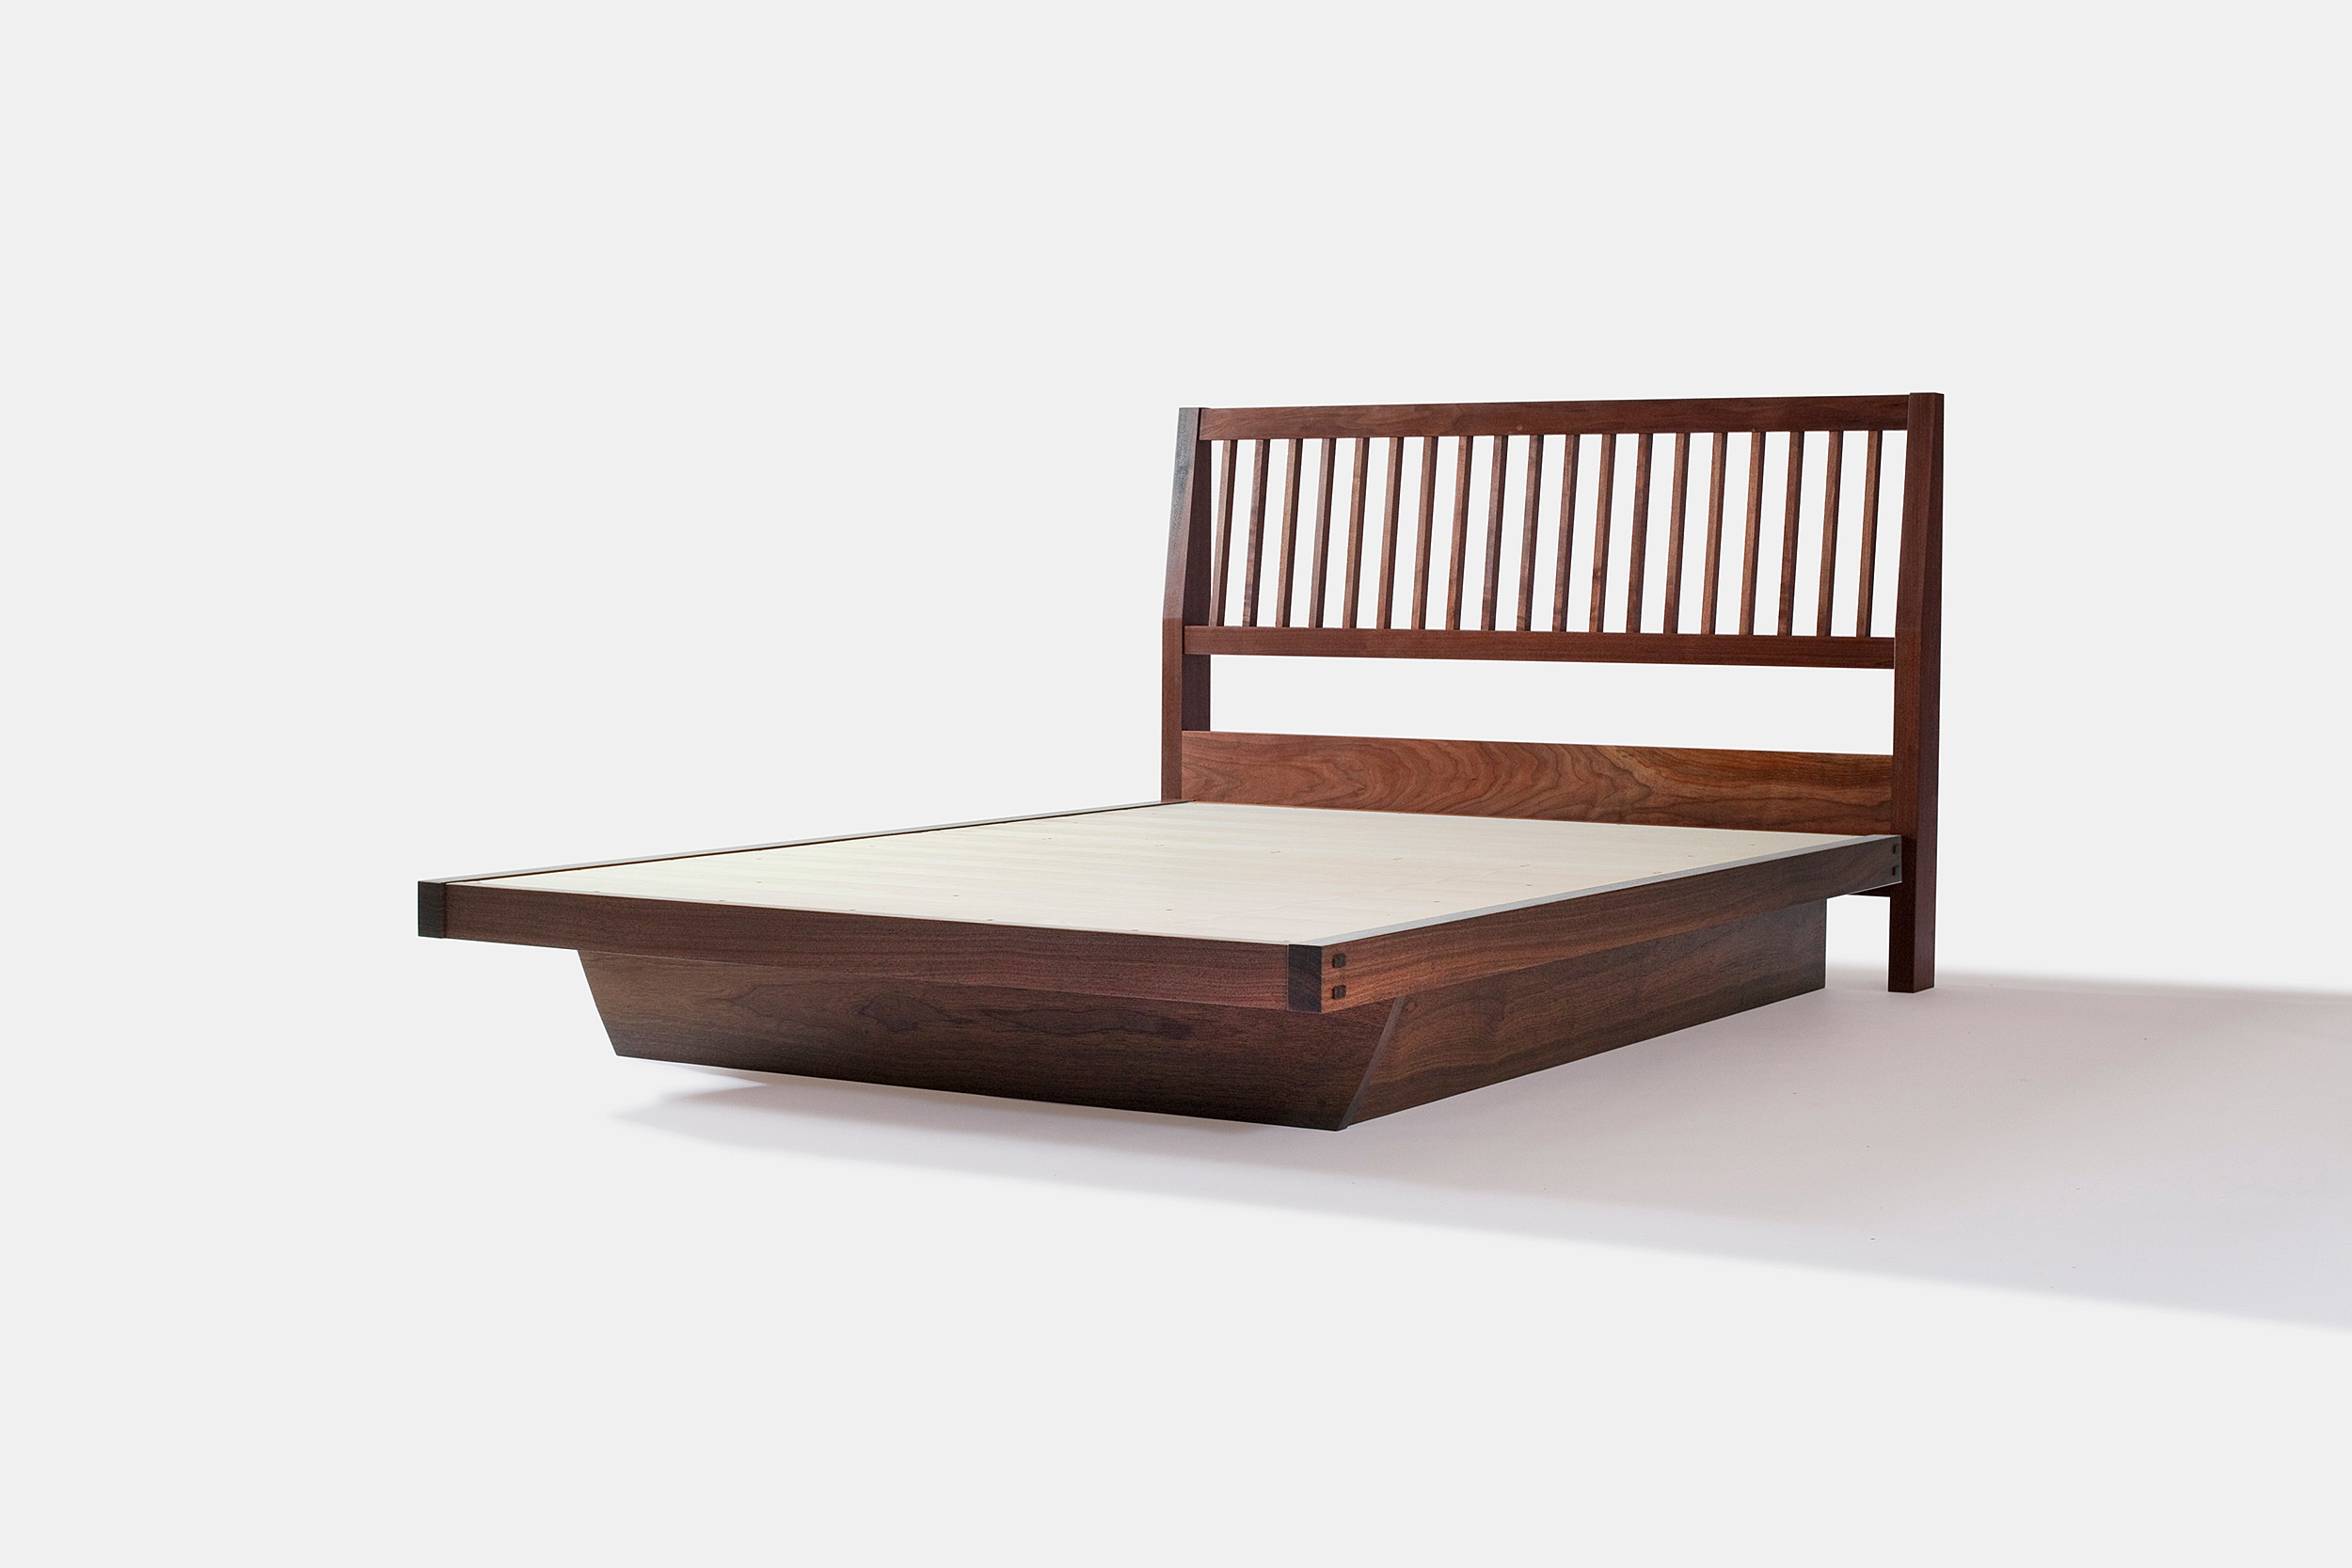 Beds Breadboards George Nakashima Woodworkers